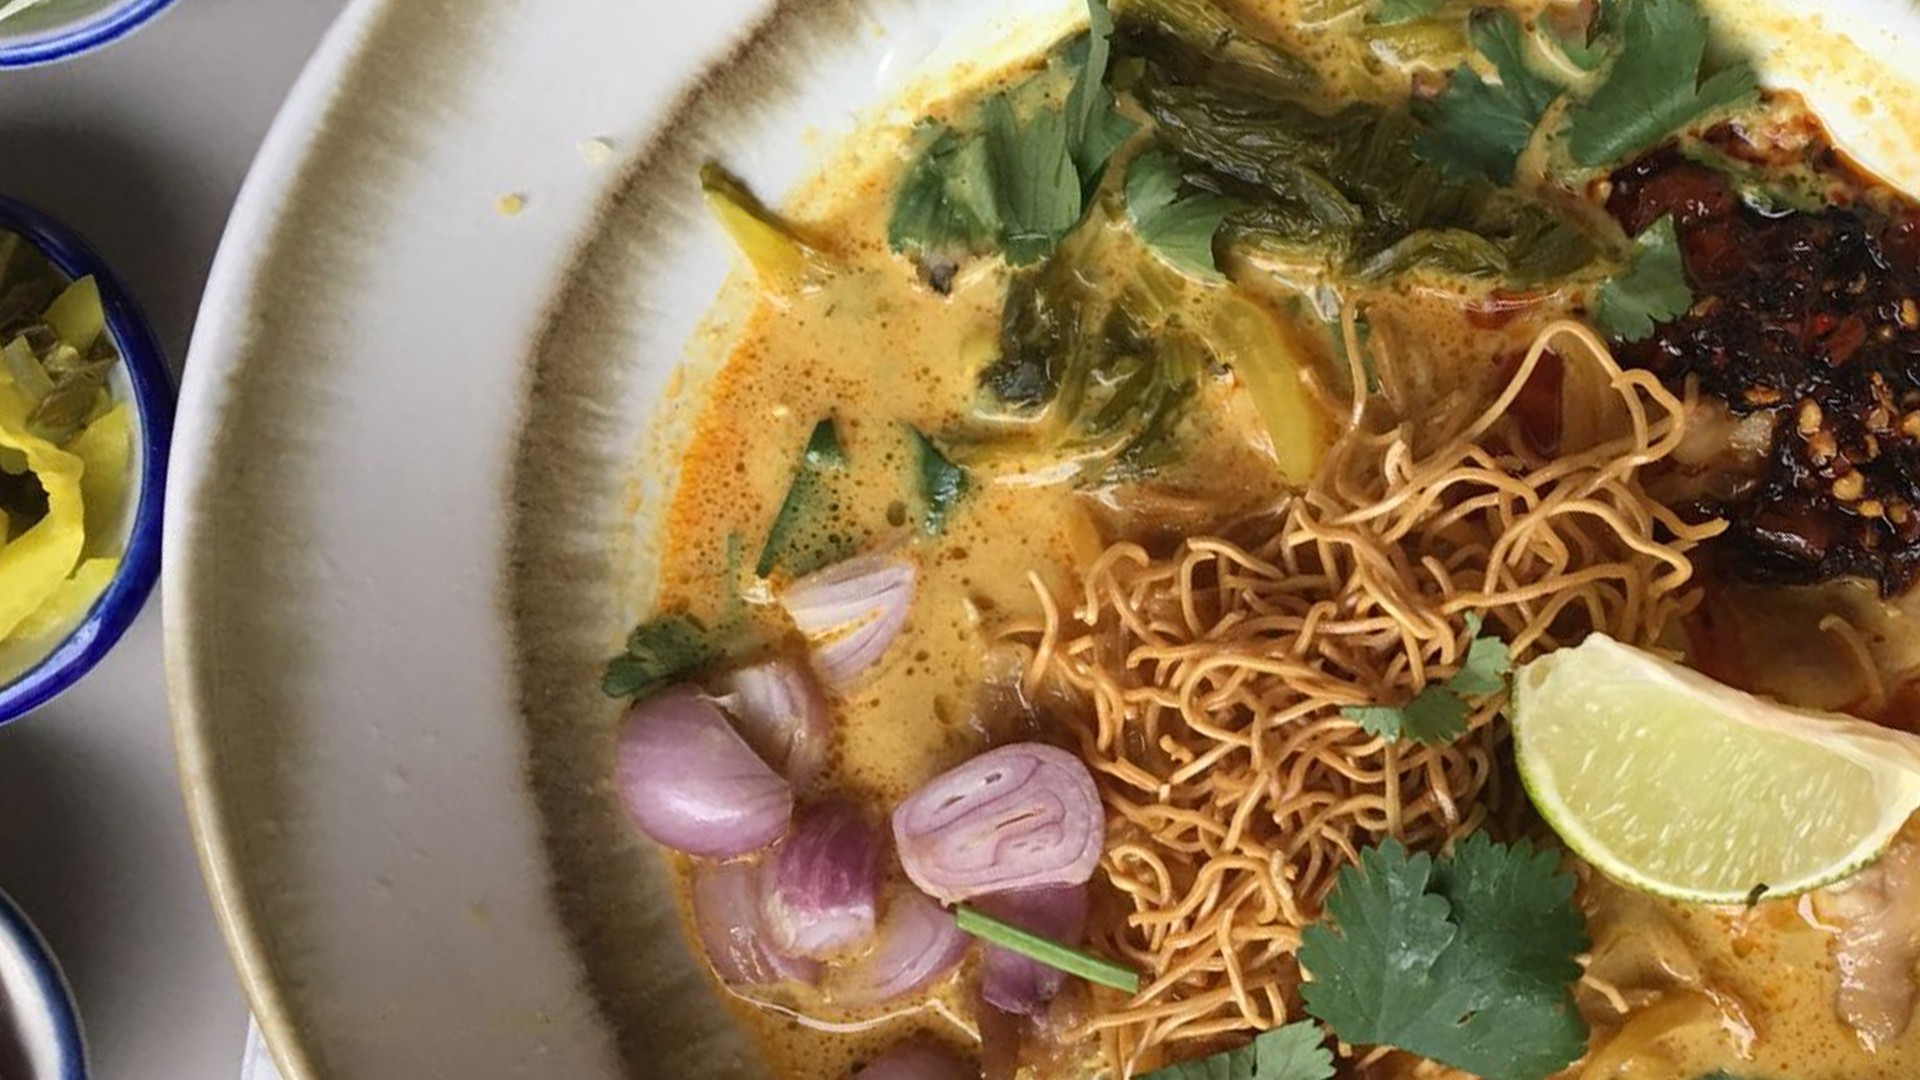 Khao soi gai, a huge, turmeric-yellow curried coconut noodle soup from Chiang Mai